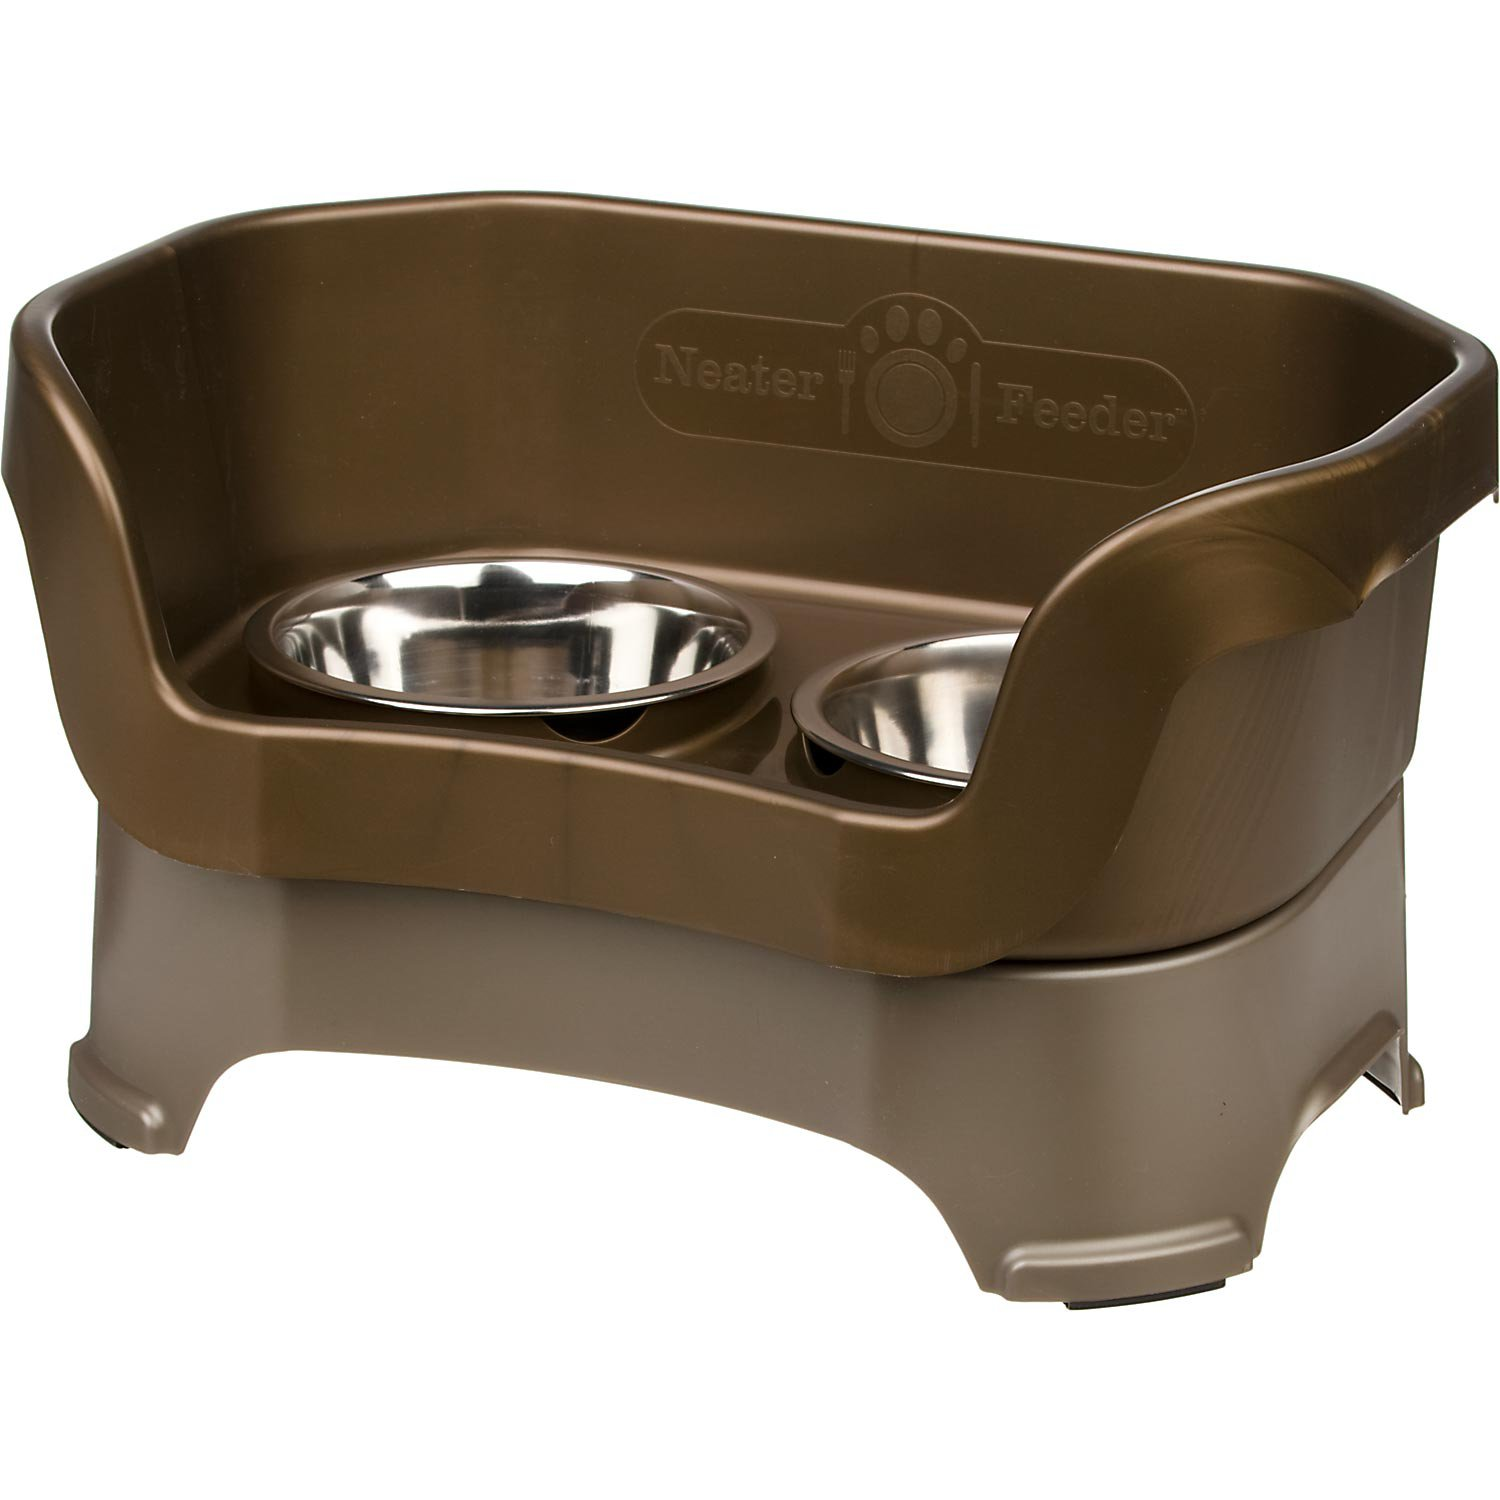 Neater Brands Bronze Elevated Pet Diners